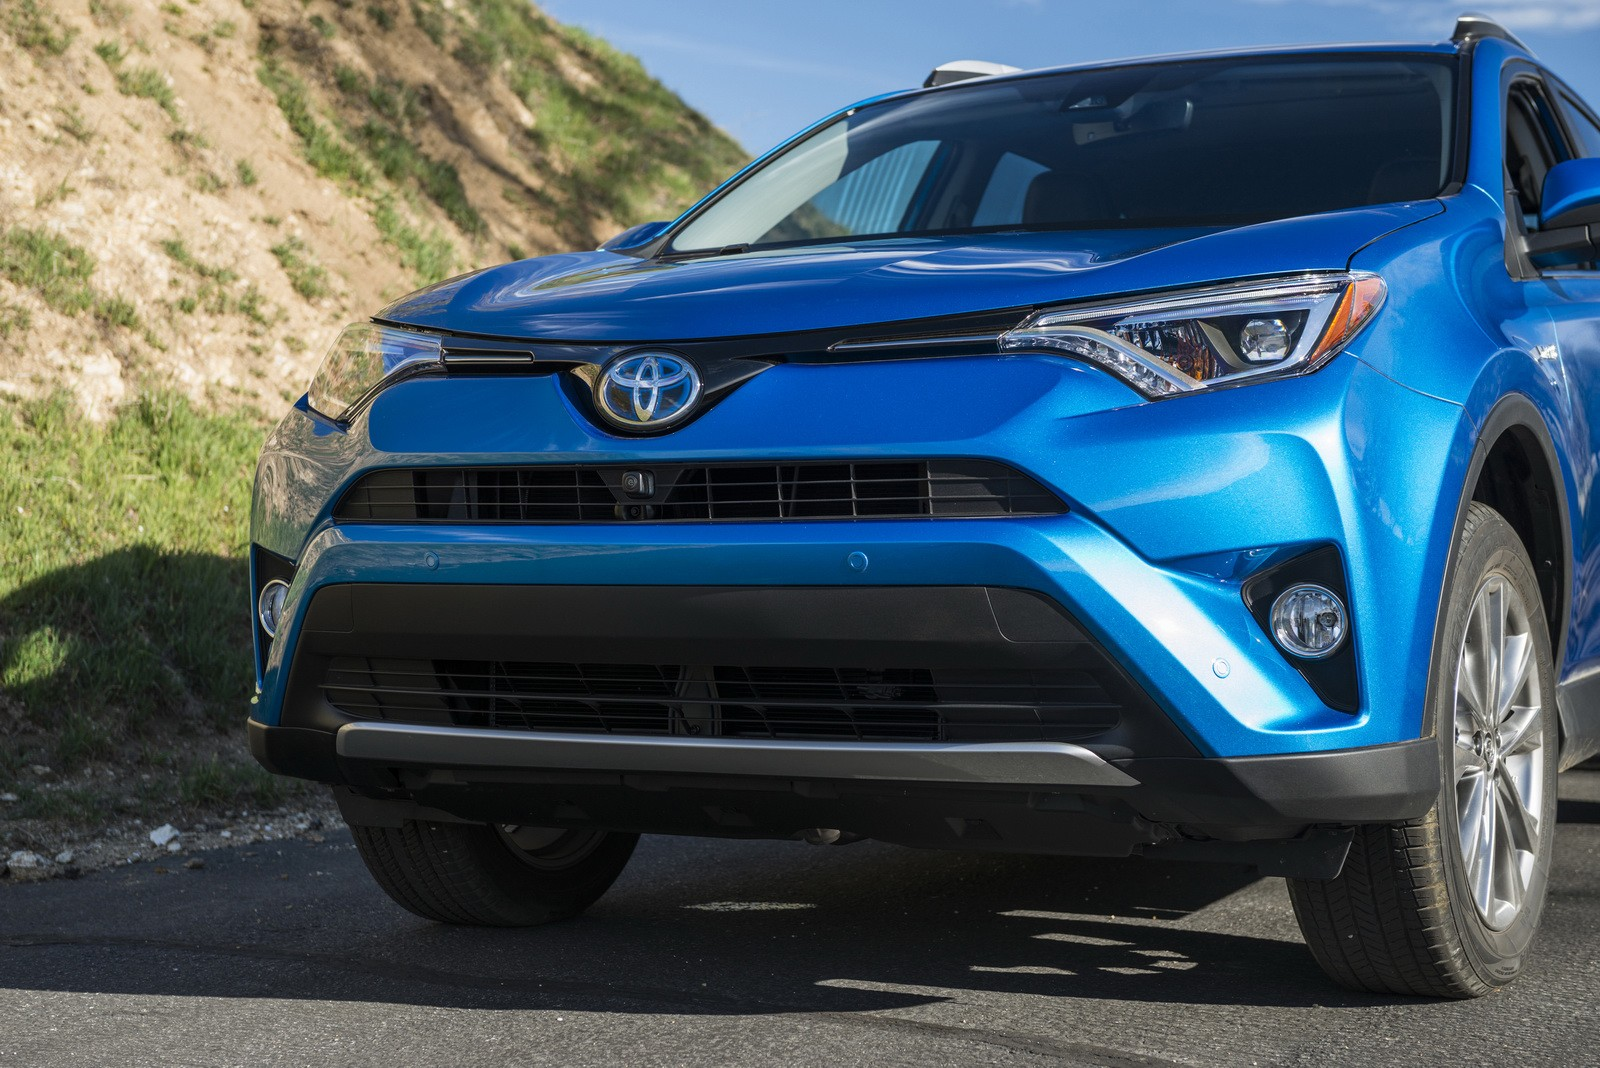 2016 toyota rav4 hybrid pricing announced full specs released autoevolution. Black Bedroom Furniture Sets. Home Design Ideas